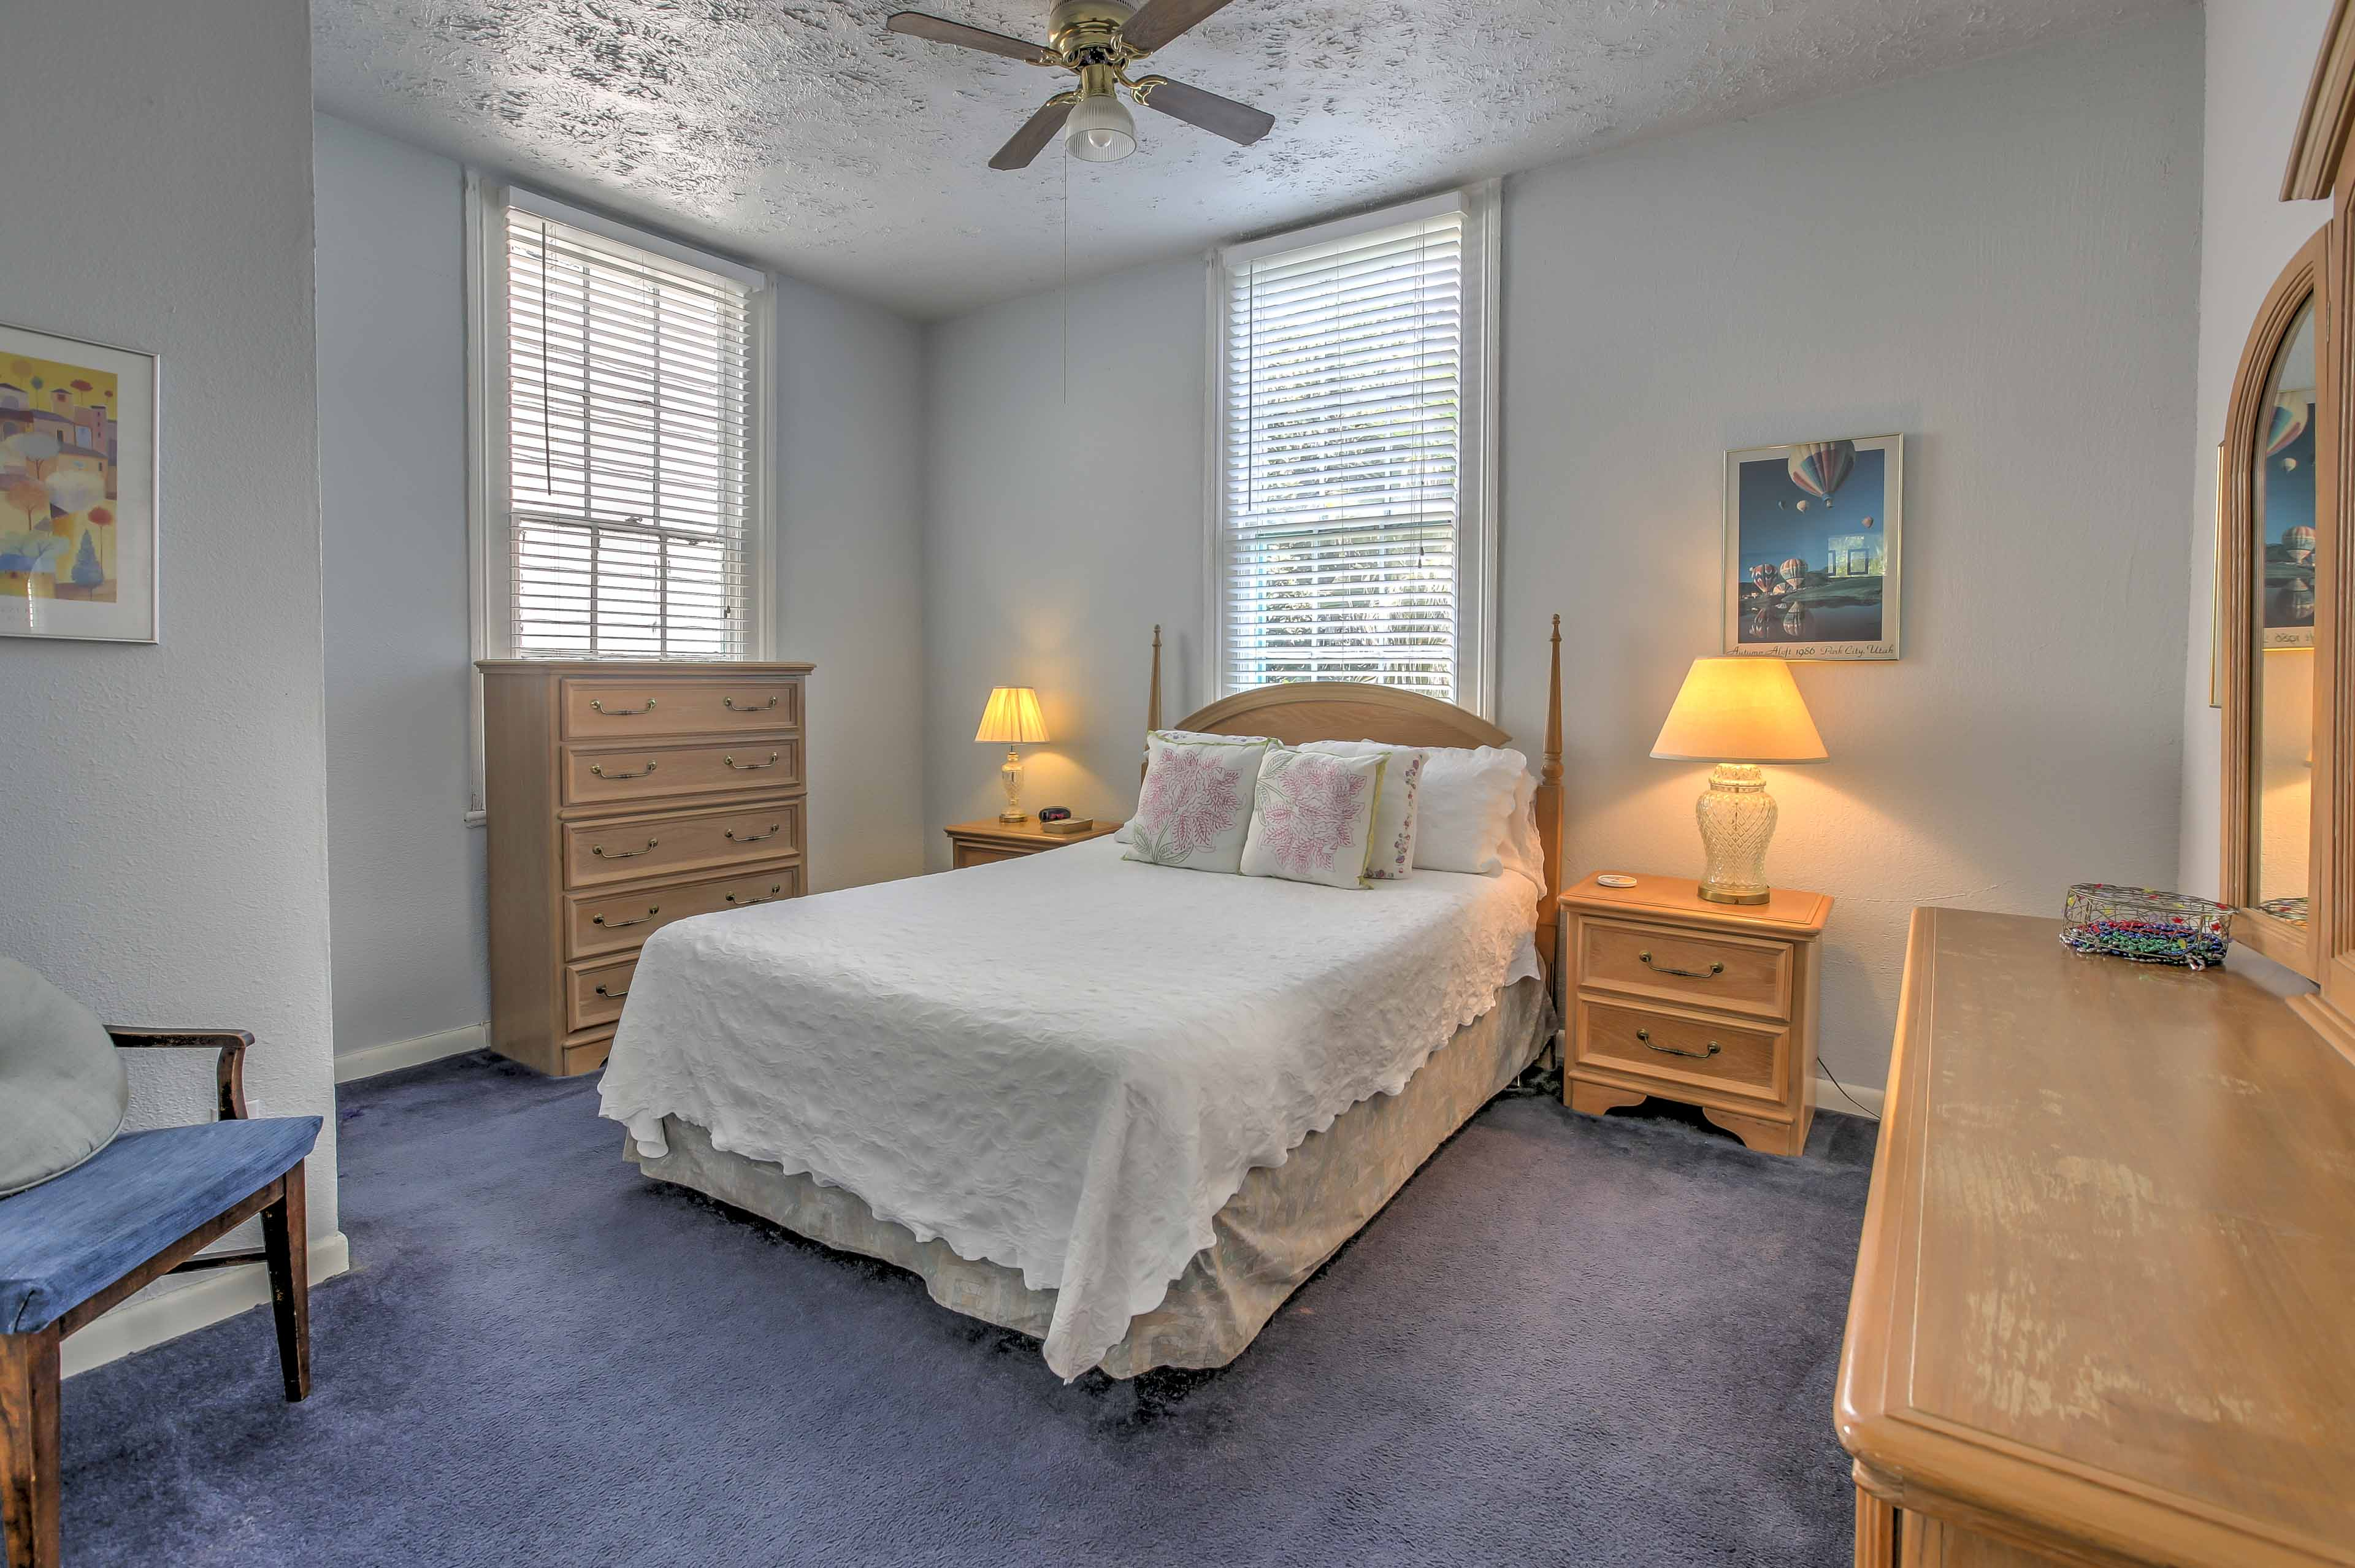 Cuddle up in the queen bed in the master!